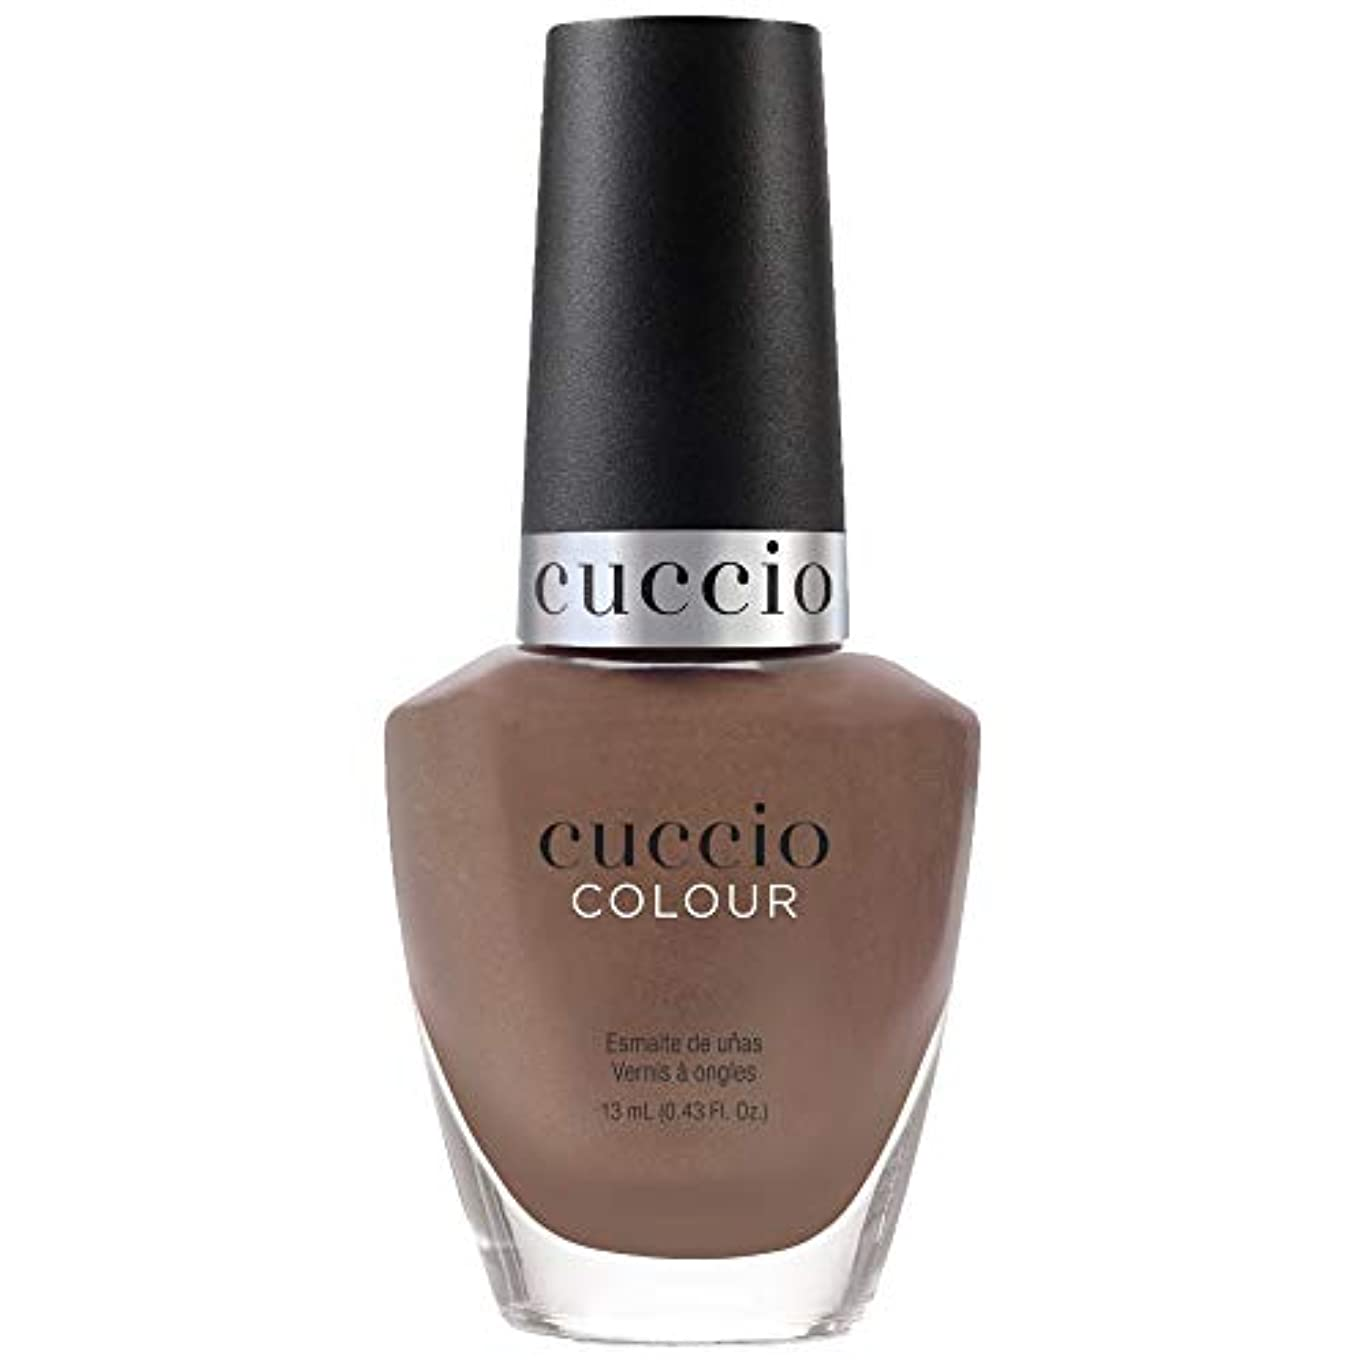 エーカー変形するブリーフケースCuccio Colour Nail Lacquer - Tapestry Collection - Positive Thread - 13 mL / 0.43 oz